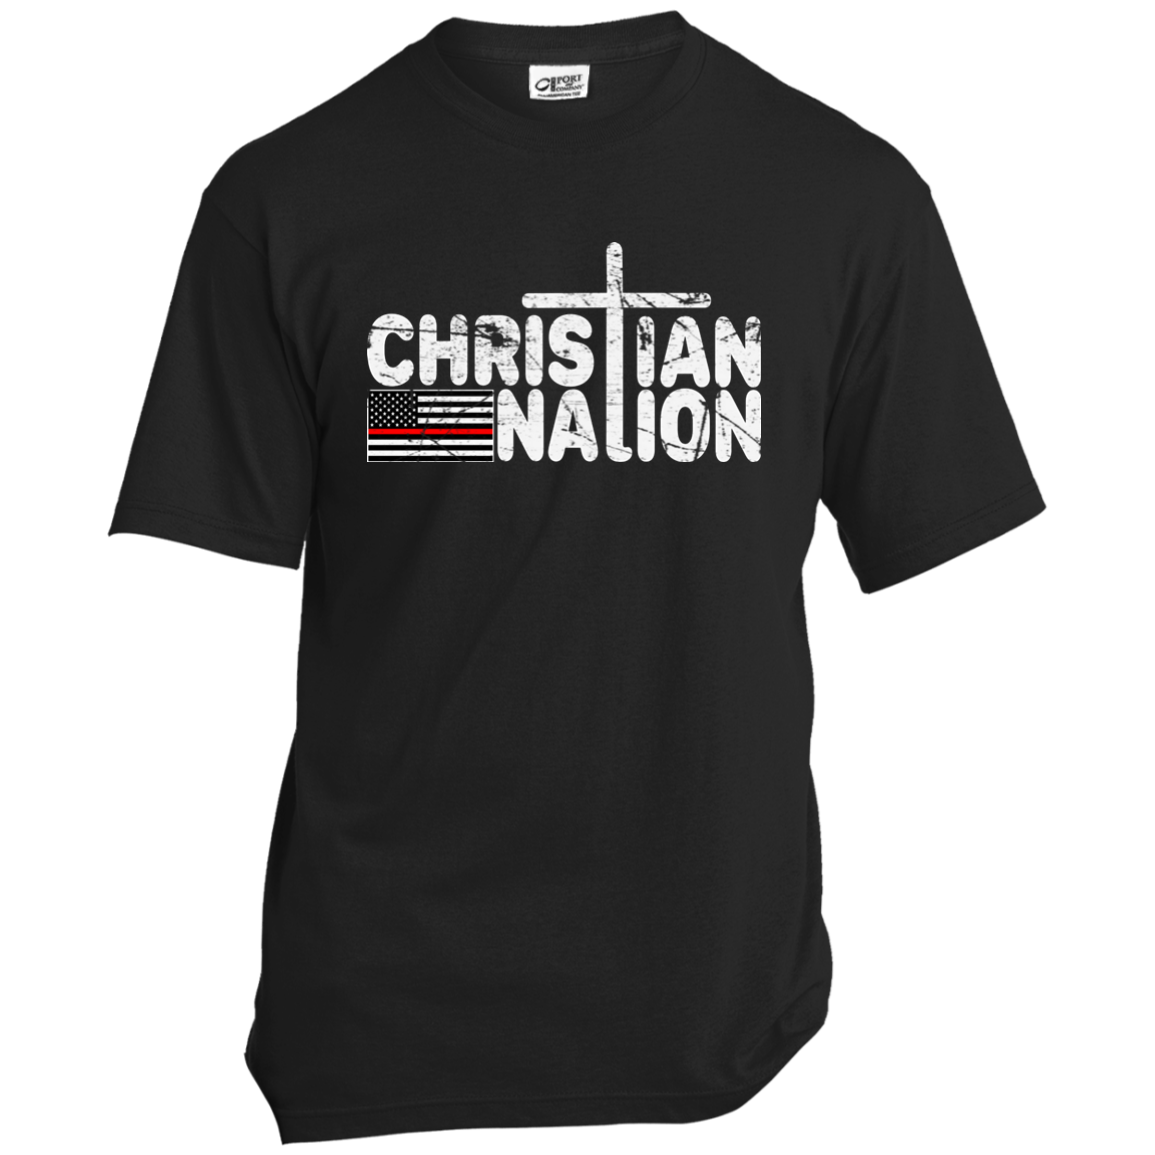 CHRISTIAN NATION RED STRIPE WHITE TEXT T SHIRTS   RED CROSS FLAG ON BACK